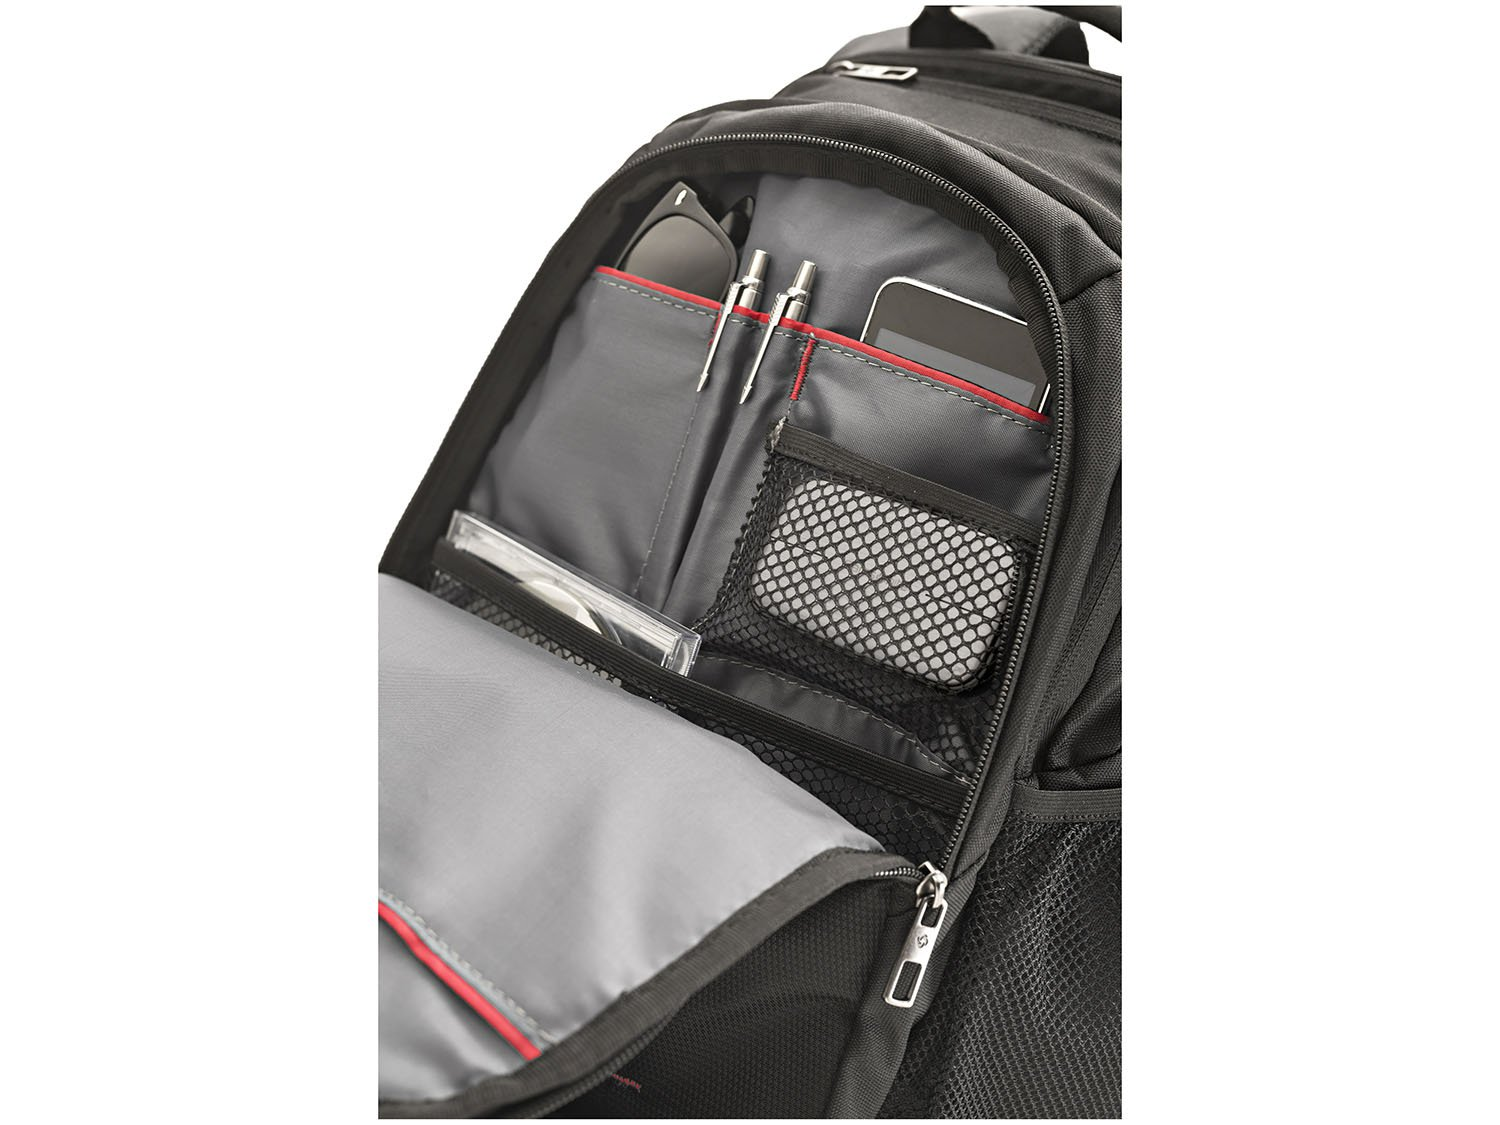 Mochila Samsonite para Notebook Guard IT Preto - 5